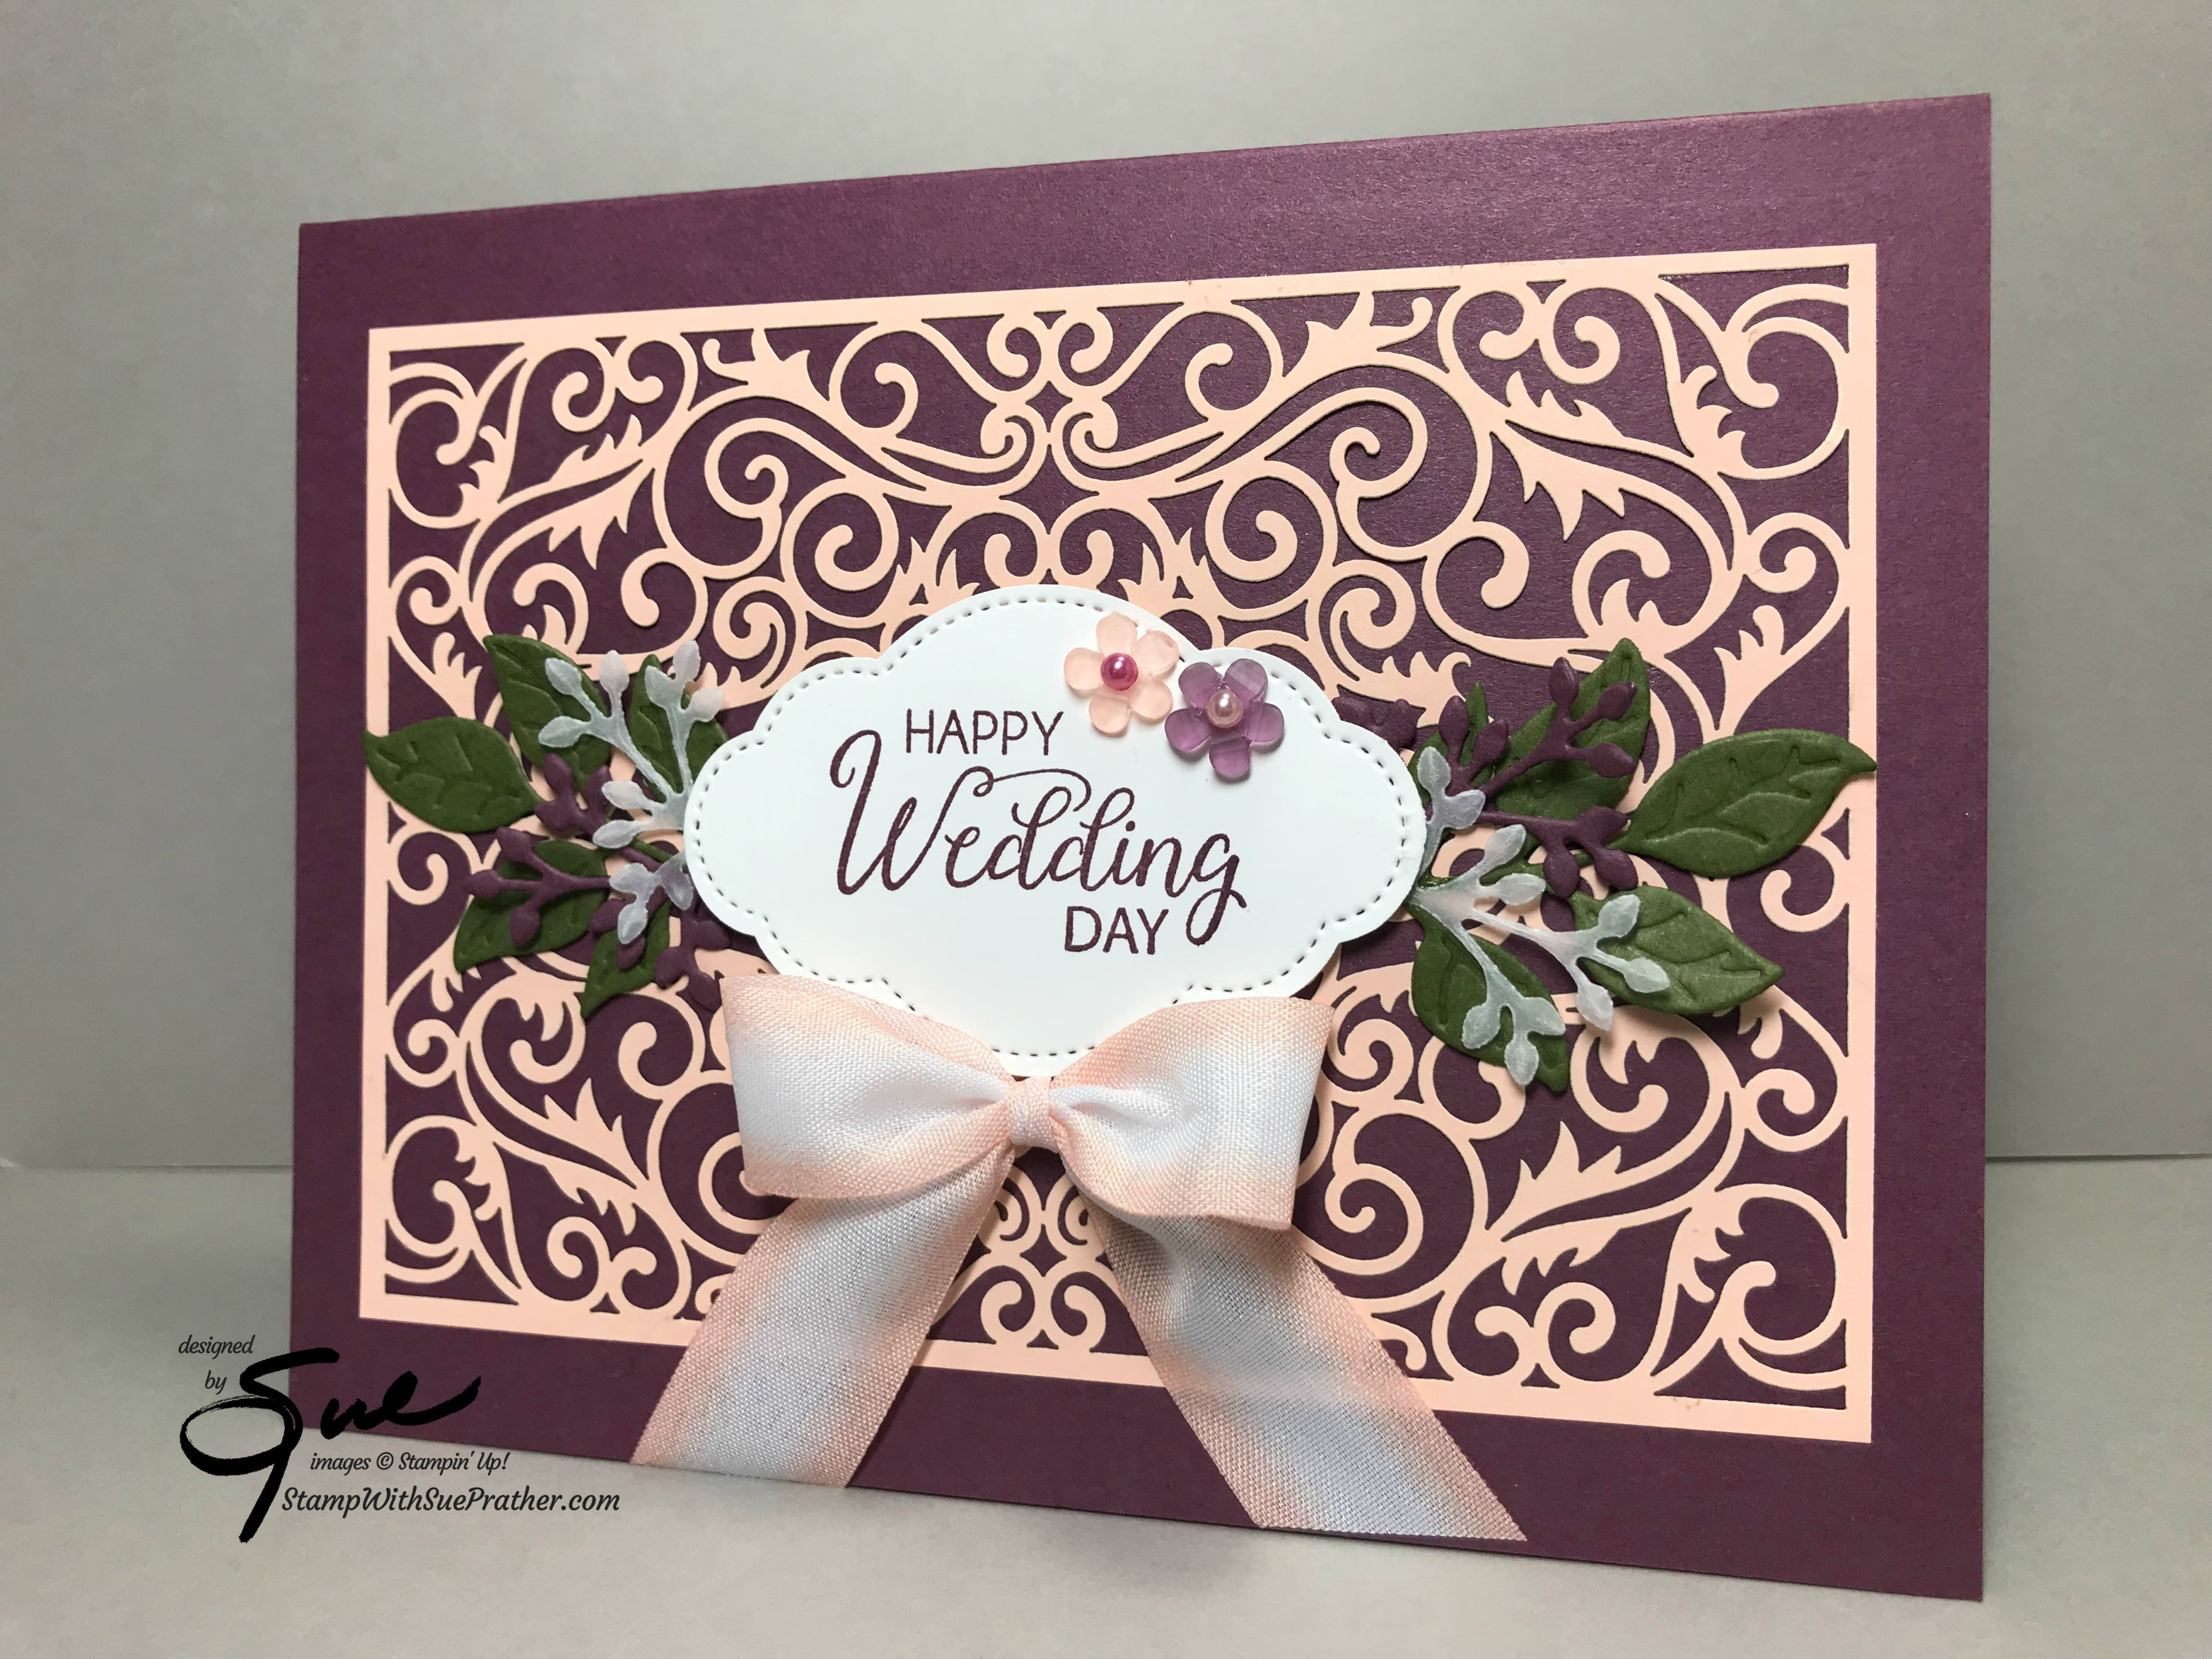 Stampin Up Beautiful Bouquet Wedding Day For The Happy Inkin Thursday Blog Hop Stamp With Sue Prather